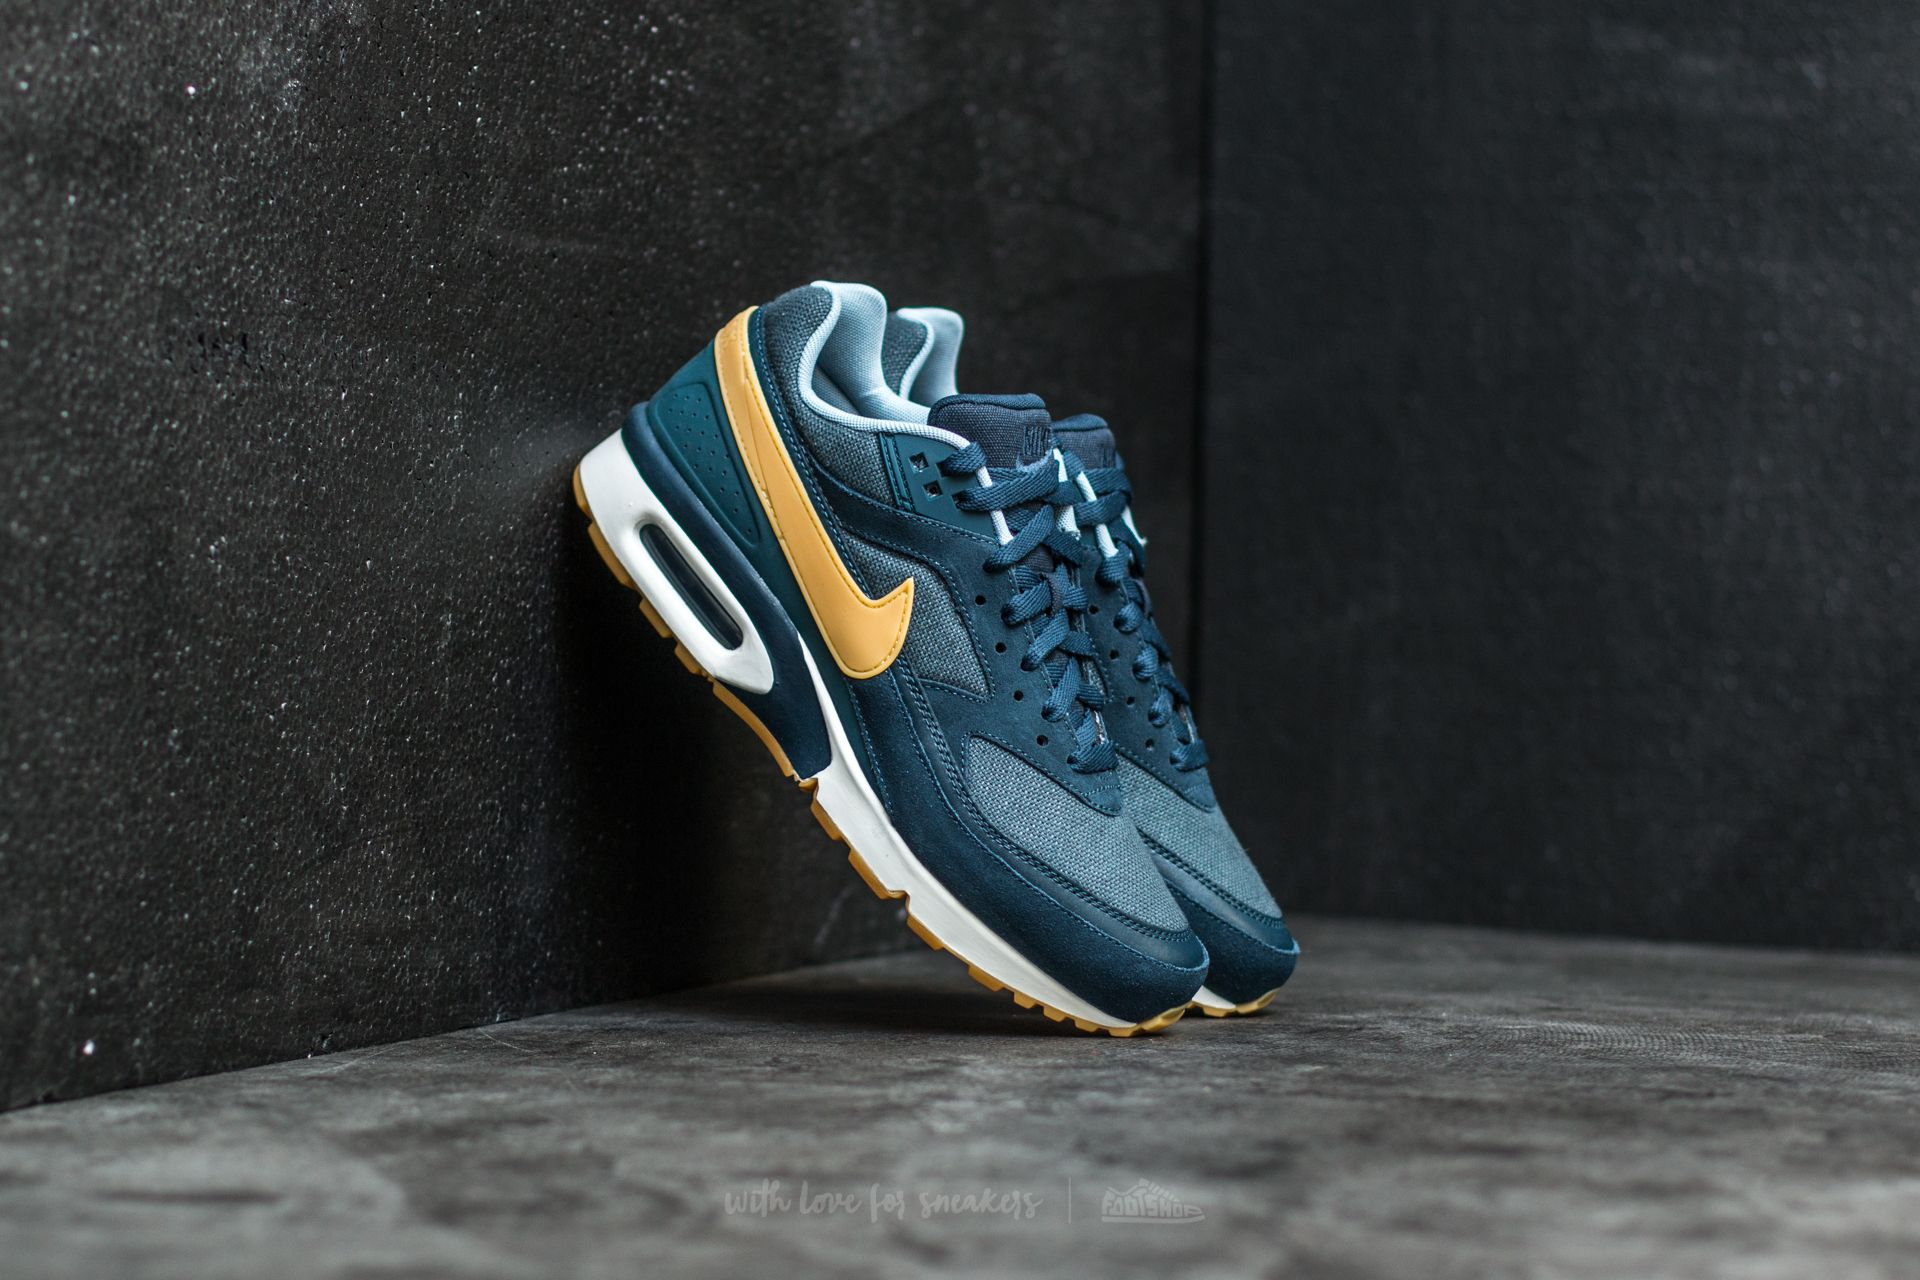 281a3062f0 Nike Air Max BW Premium Armory Navy/ Gum Yellow | Footshop